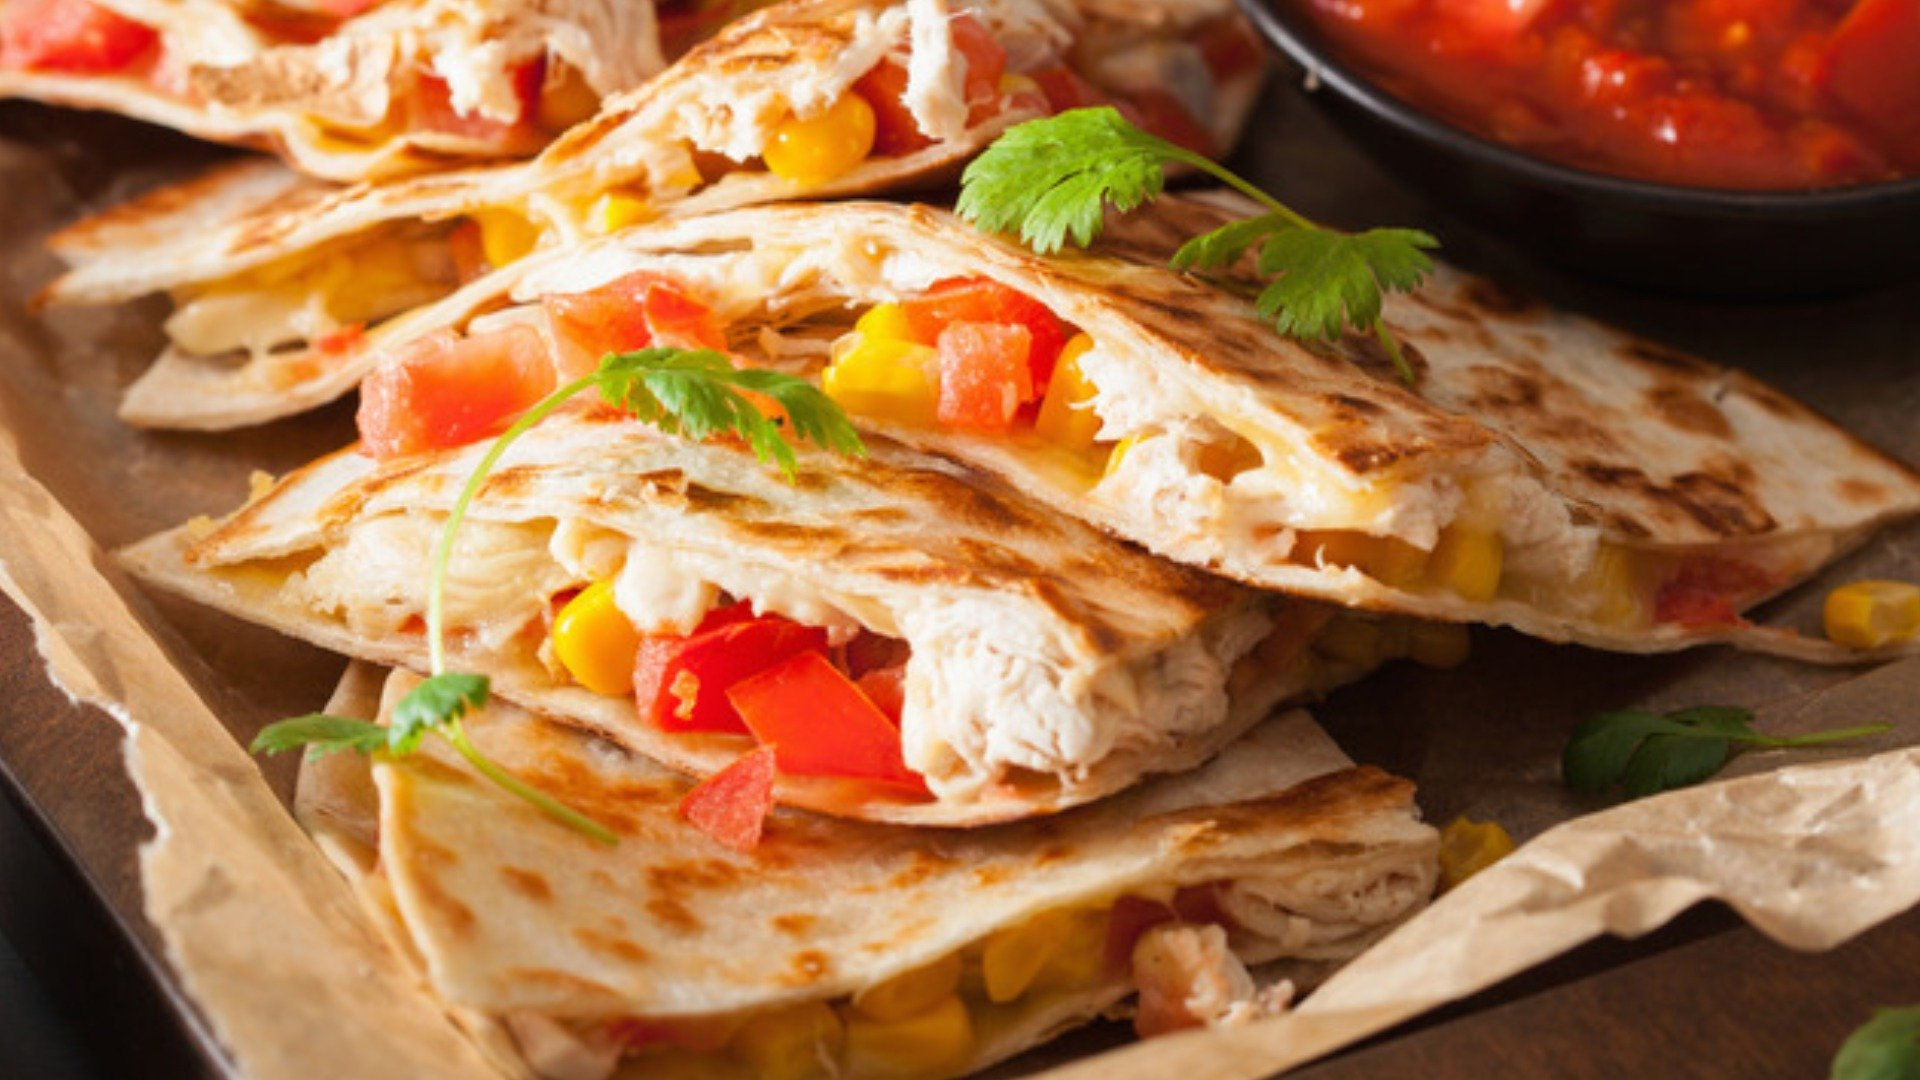 Foods You Should Always Avoid At Mexican Restaurants